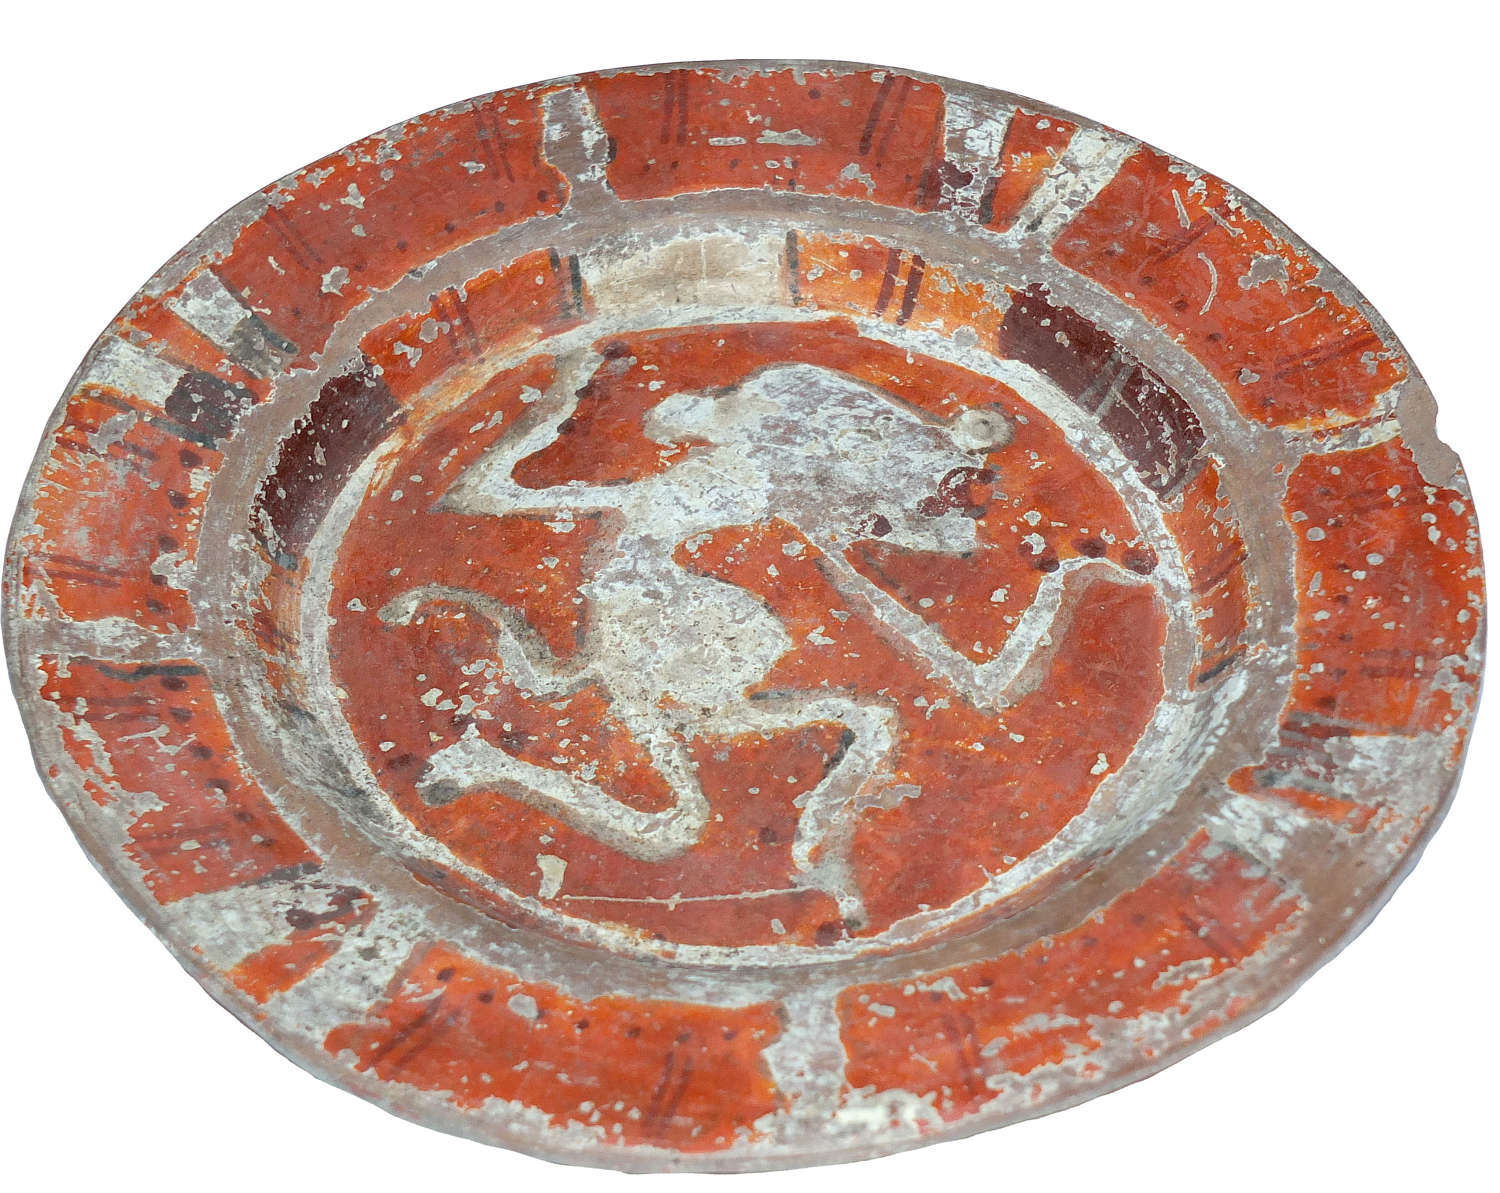 A painted Mixtec plate showing a dancing feline god, Mexico